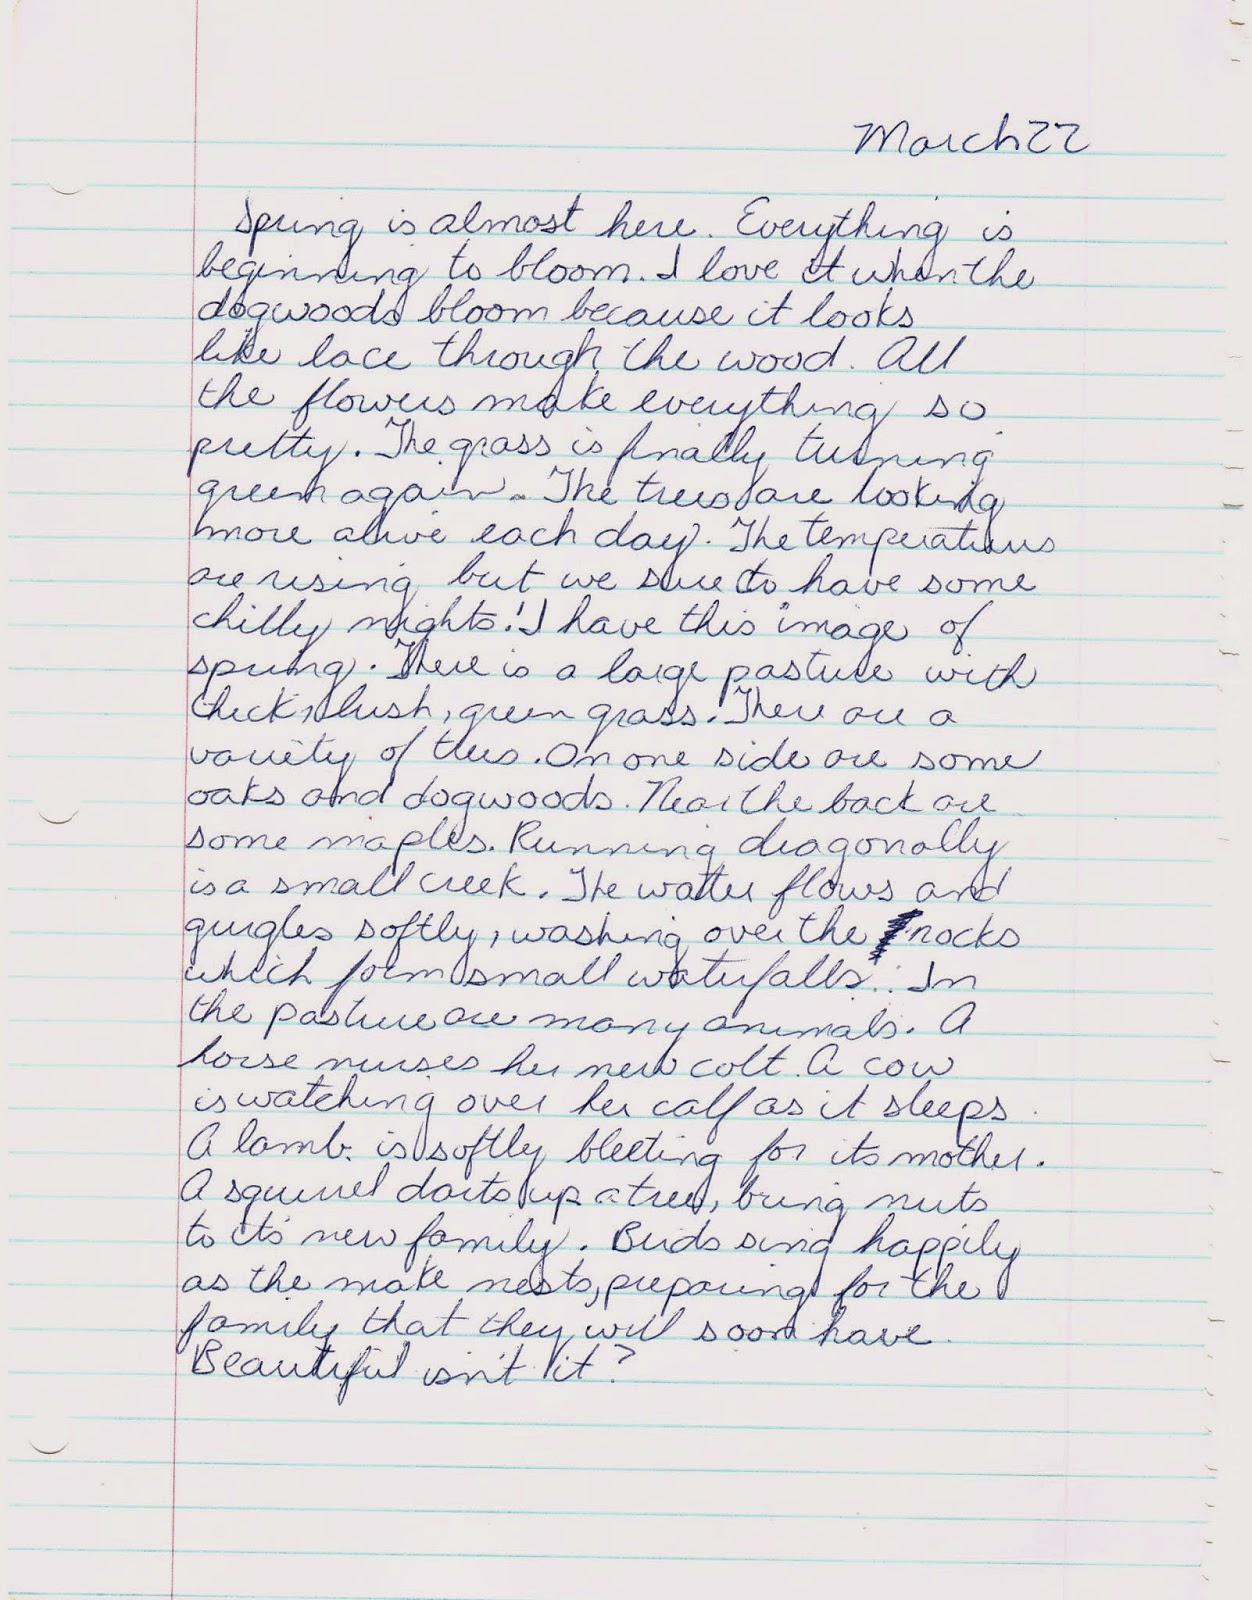 essay about experiences that changed life It was about ten o'clock on saturday morning february 28, 1987, when i had an experience that changed the rest of my life this day was different than any other because after i left my home, i would not be back for months as i waited outside for my ride to work to pick me up, i heard the sound of someone.